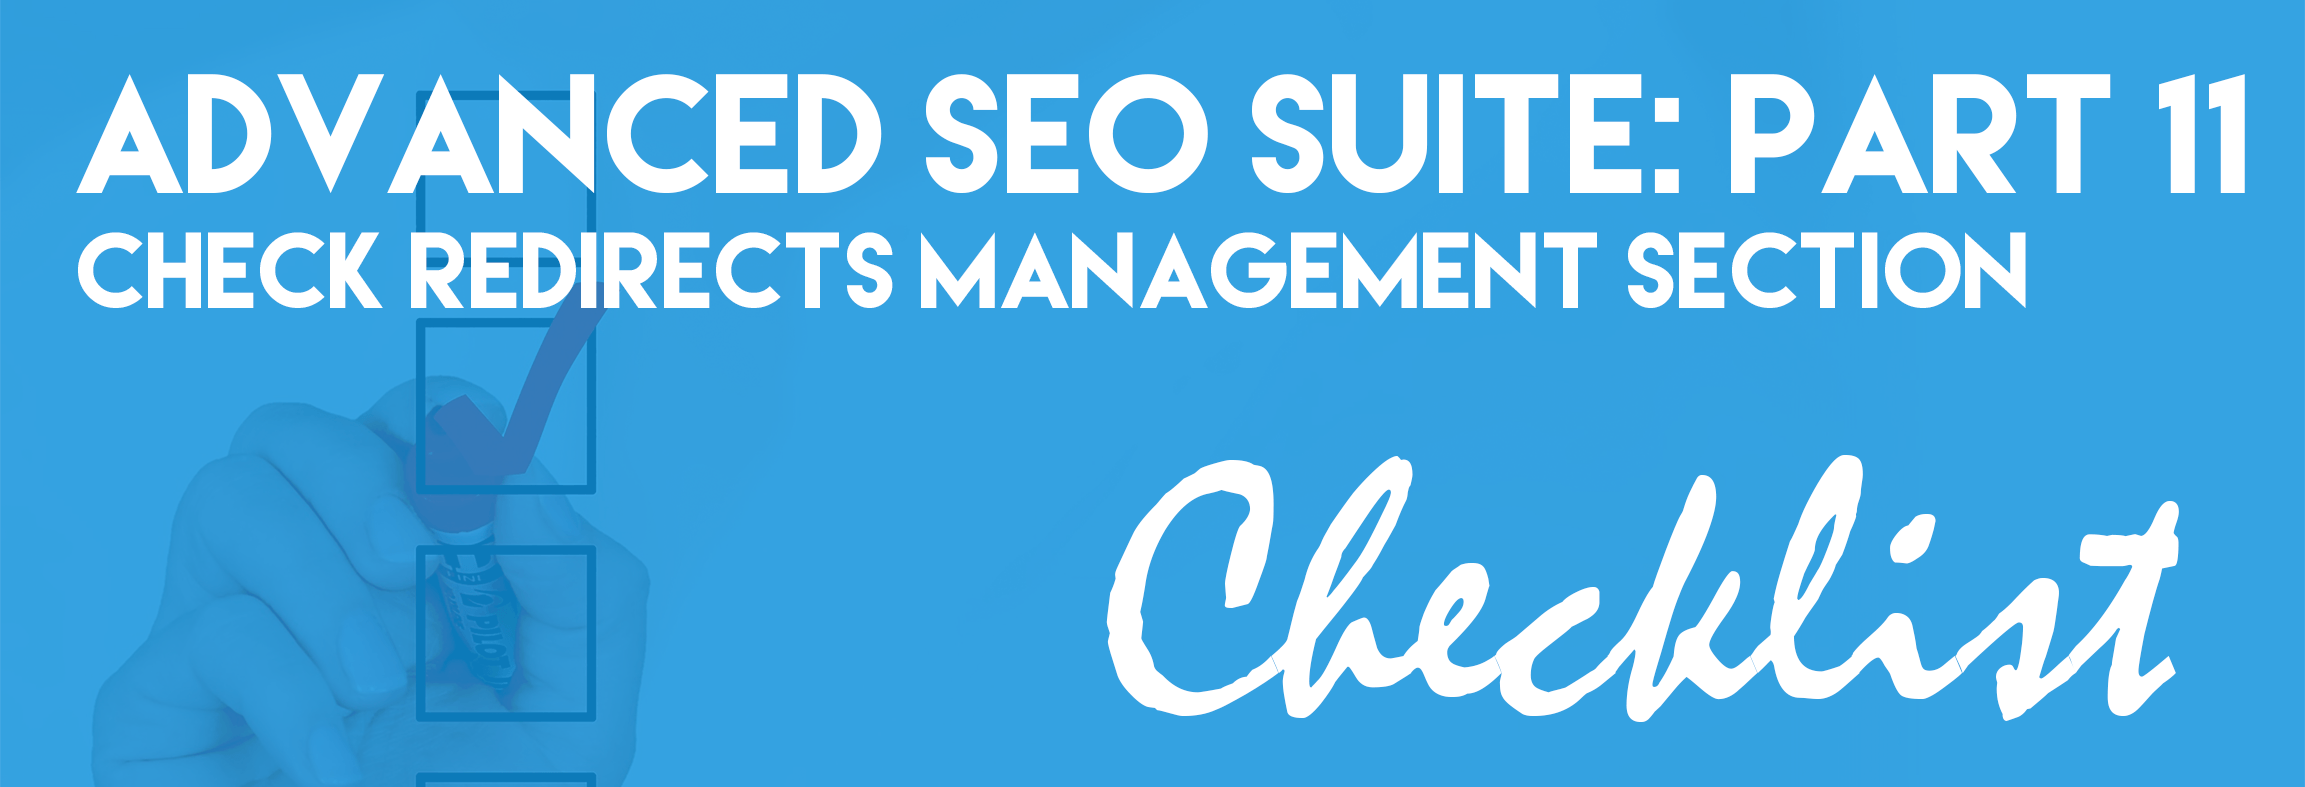 Advanced SEO Suite Onboarding Checklist (Part 11): Check Redirects Management Section